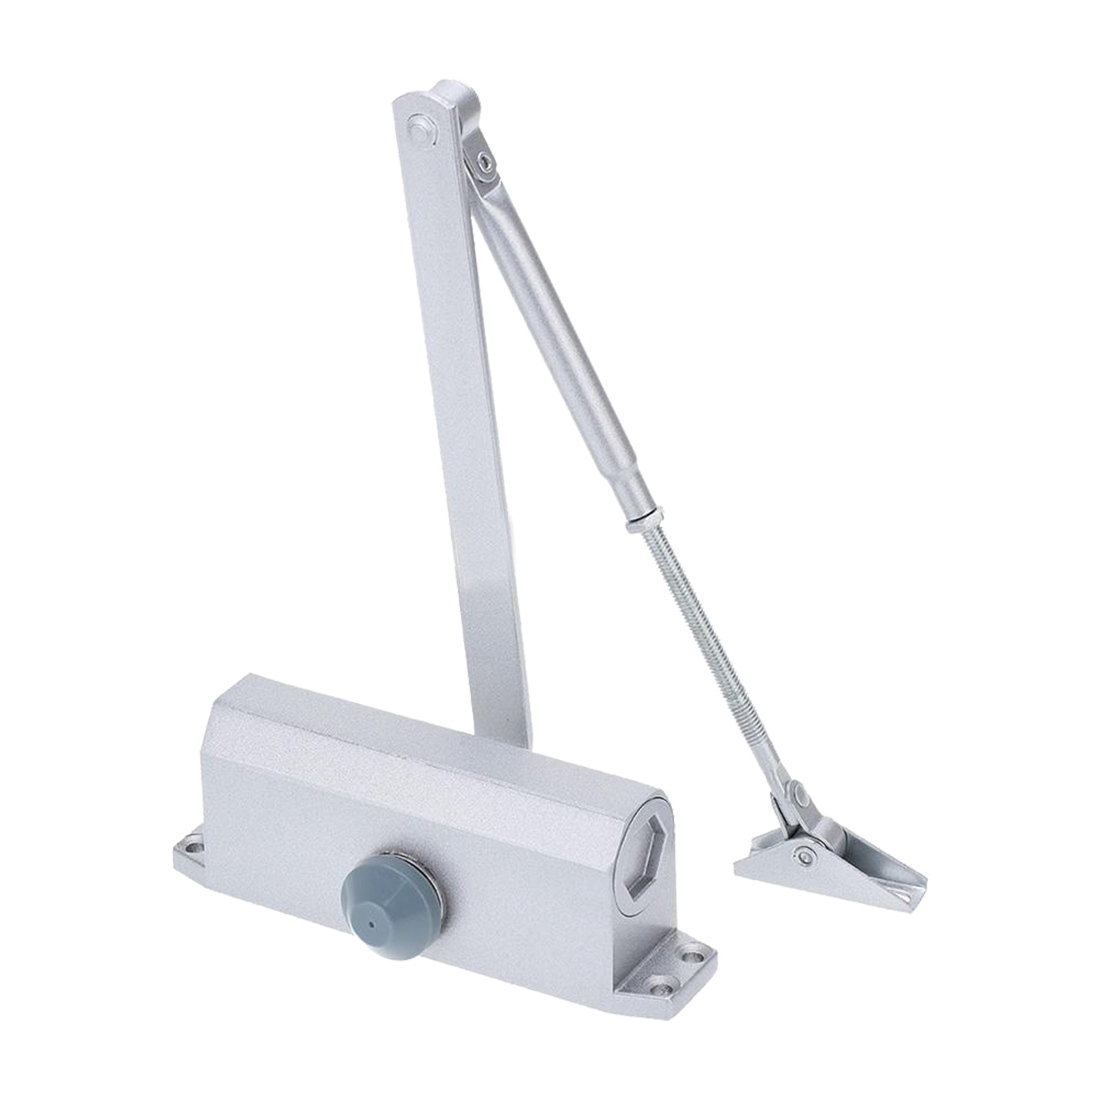 EWS-45-65KG Automatic Heavy Duty FIRE RATED Door Closer 45 65kg automatic heavy duty fire rated door closer 90 degrees door closer spring automatic door closer for home & garden